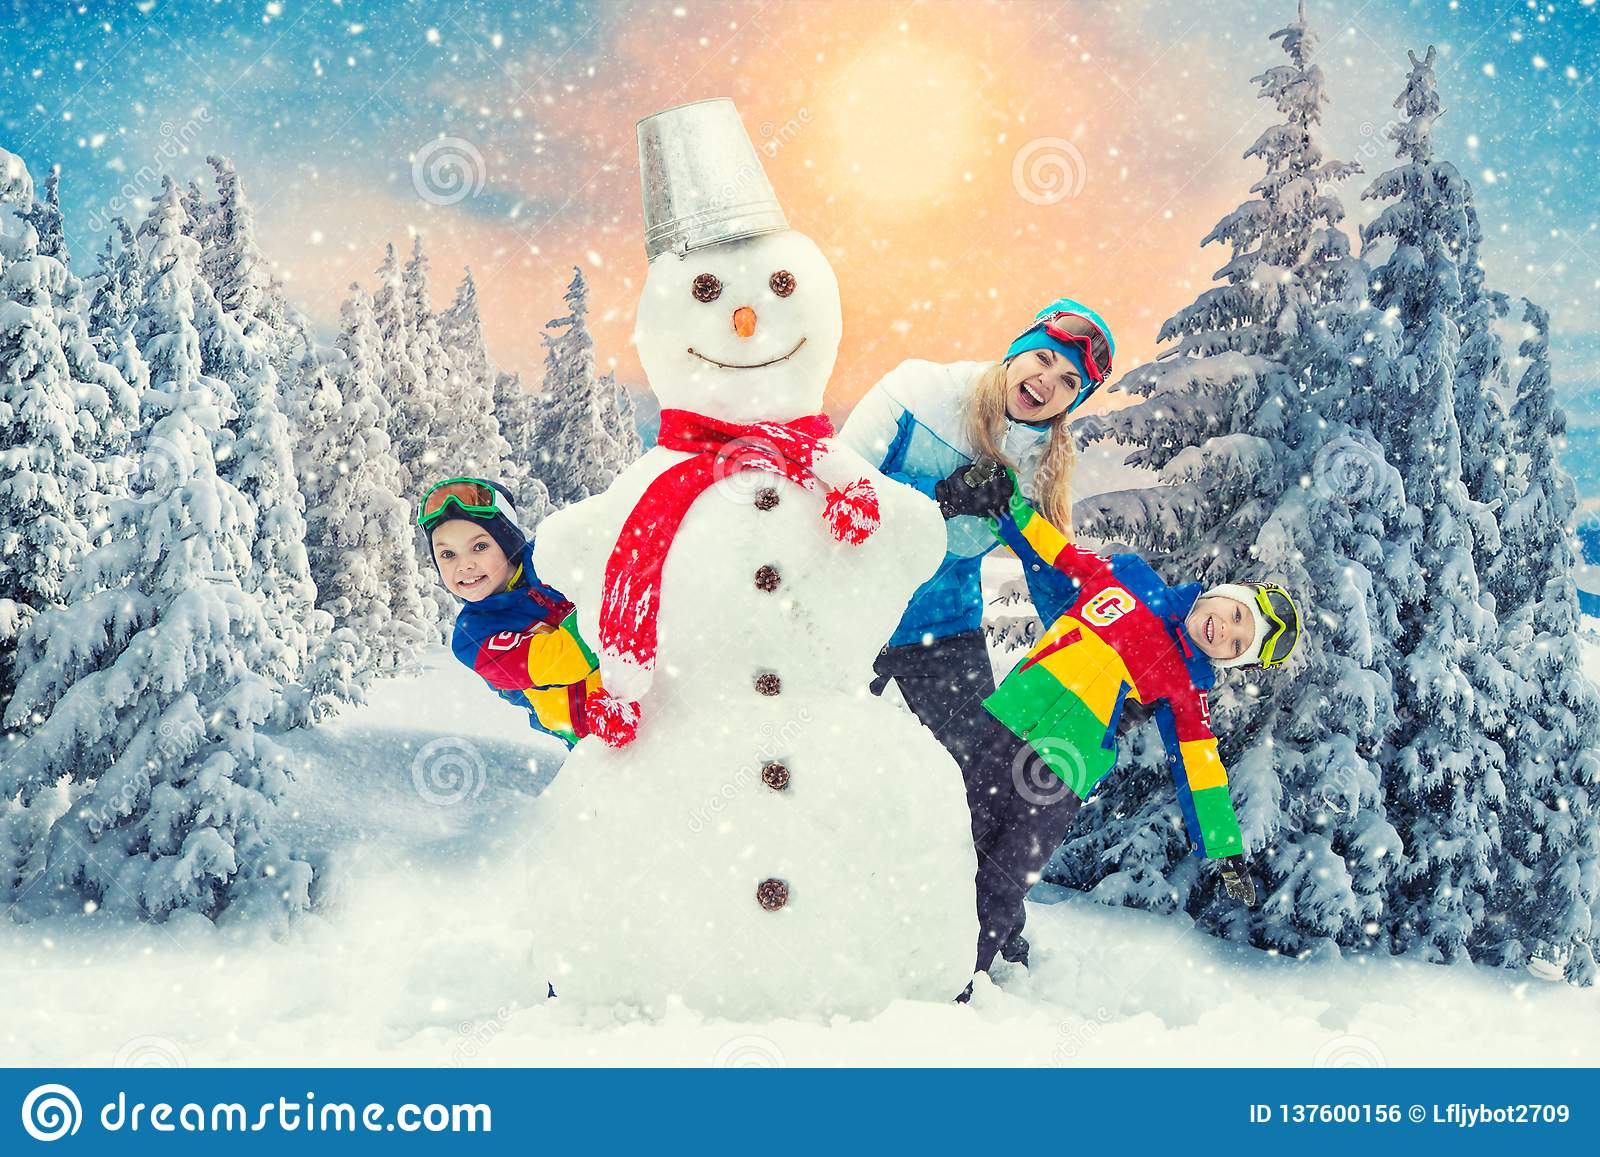 A family in a winter snowy forest mold a big snowman.Family winter fun for Christmas vacation.